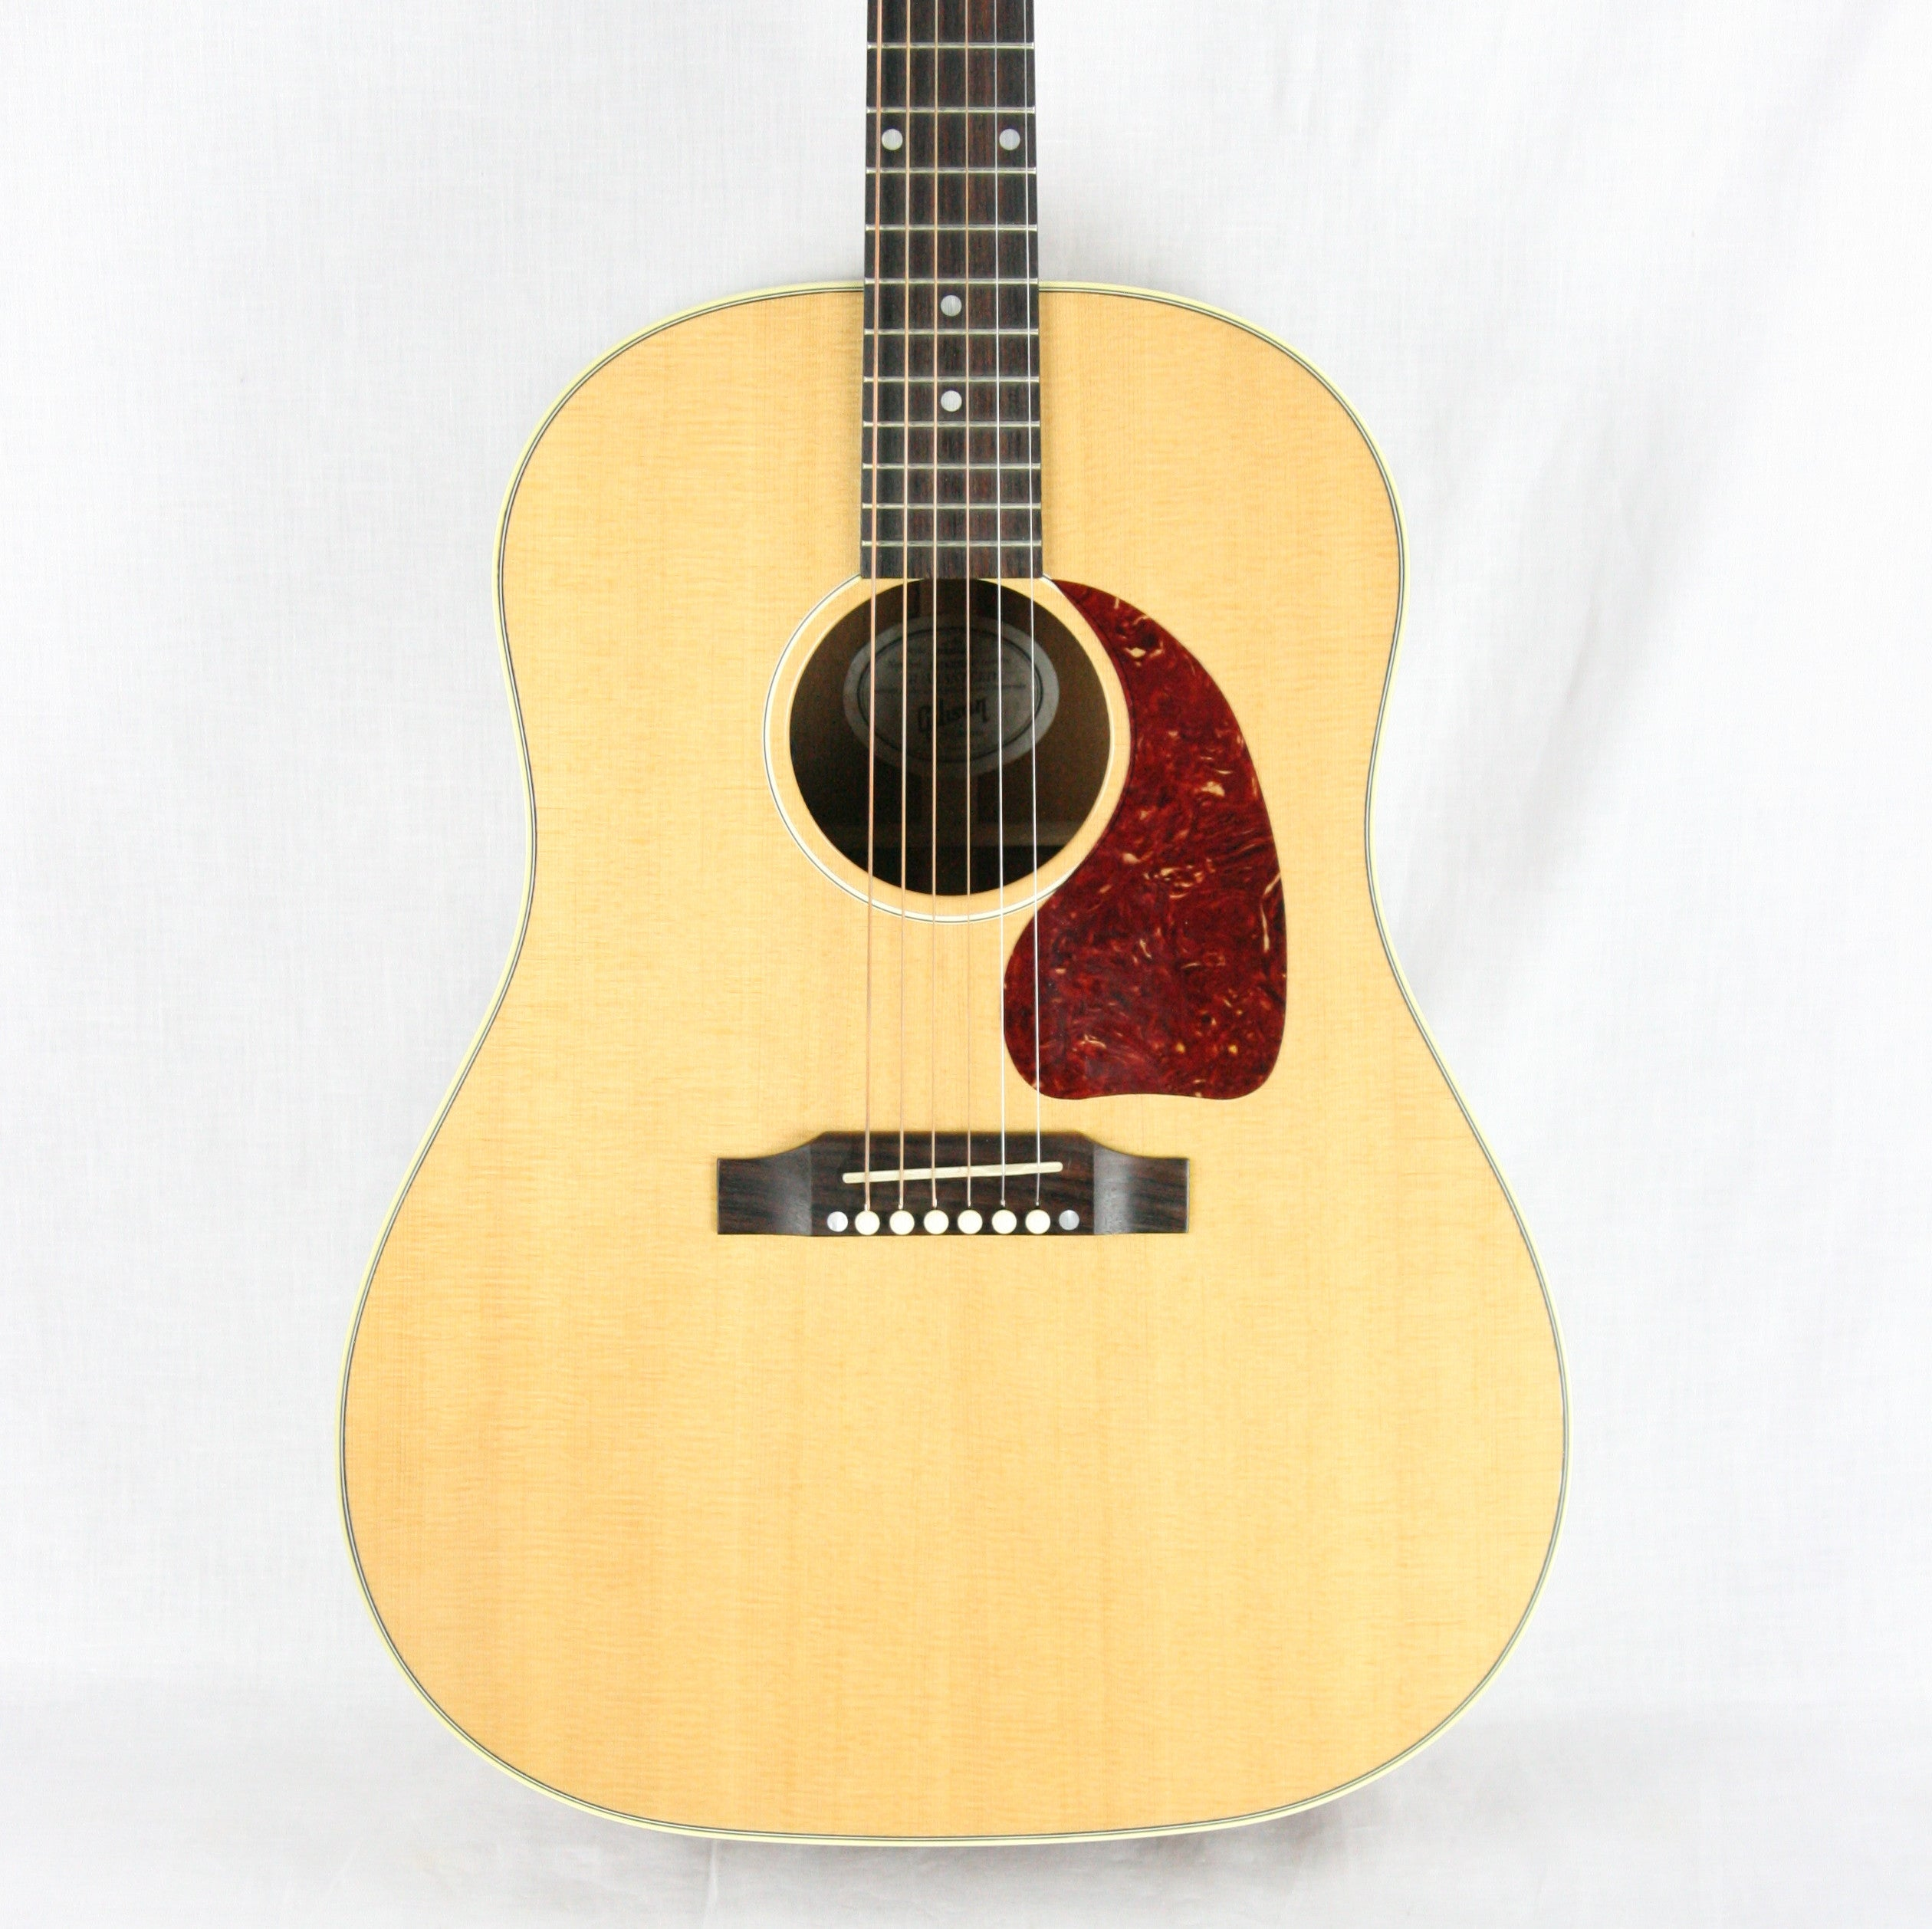 2012 Gibson J-45 Standard Natural Acoustic Flattop Guitar! j50 Montana Dreadnought